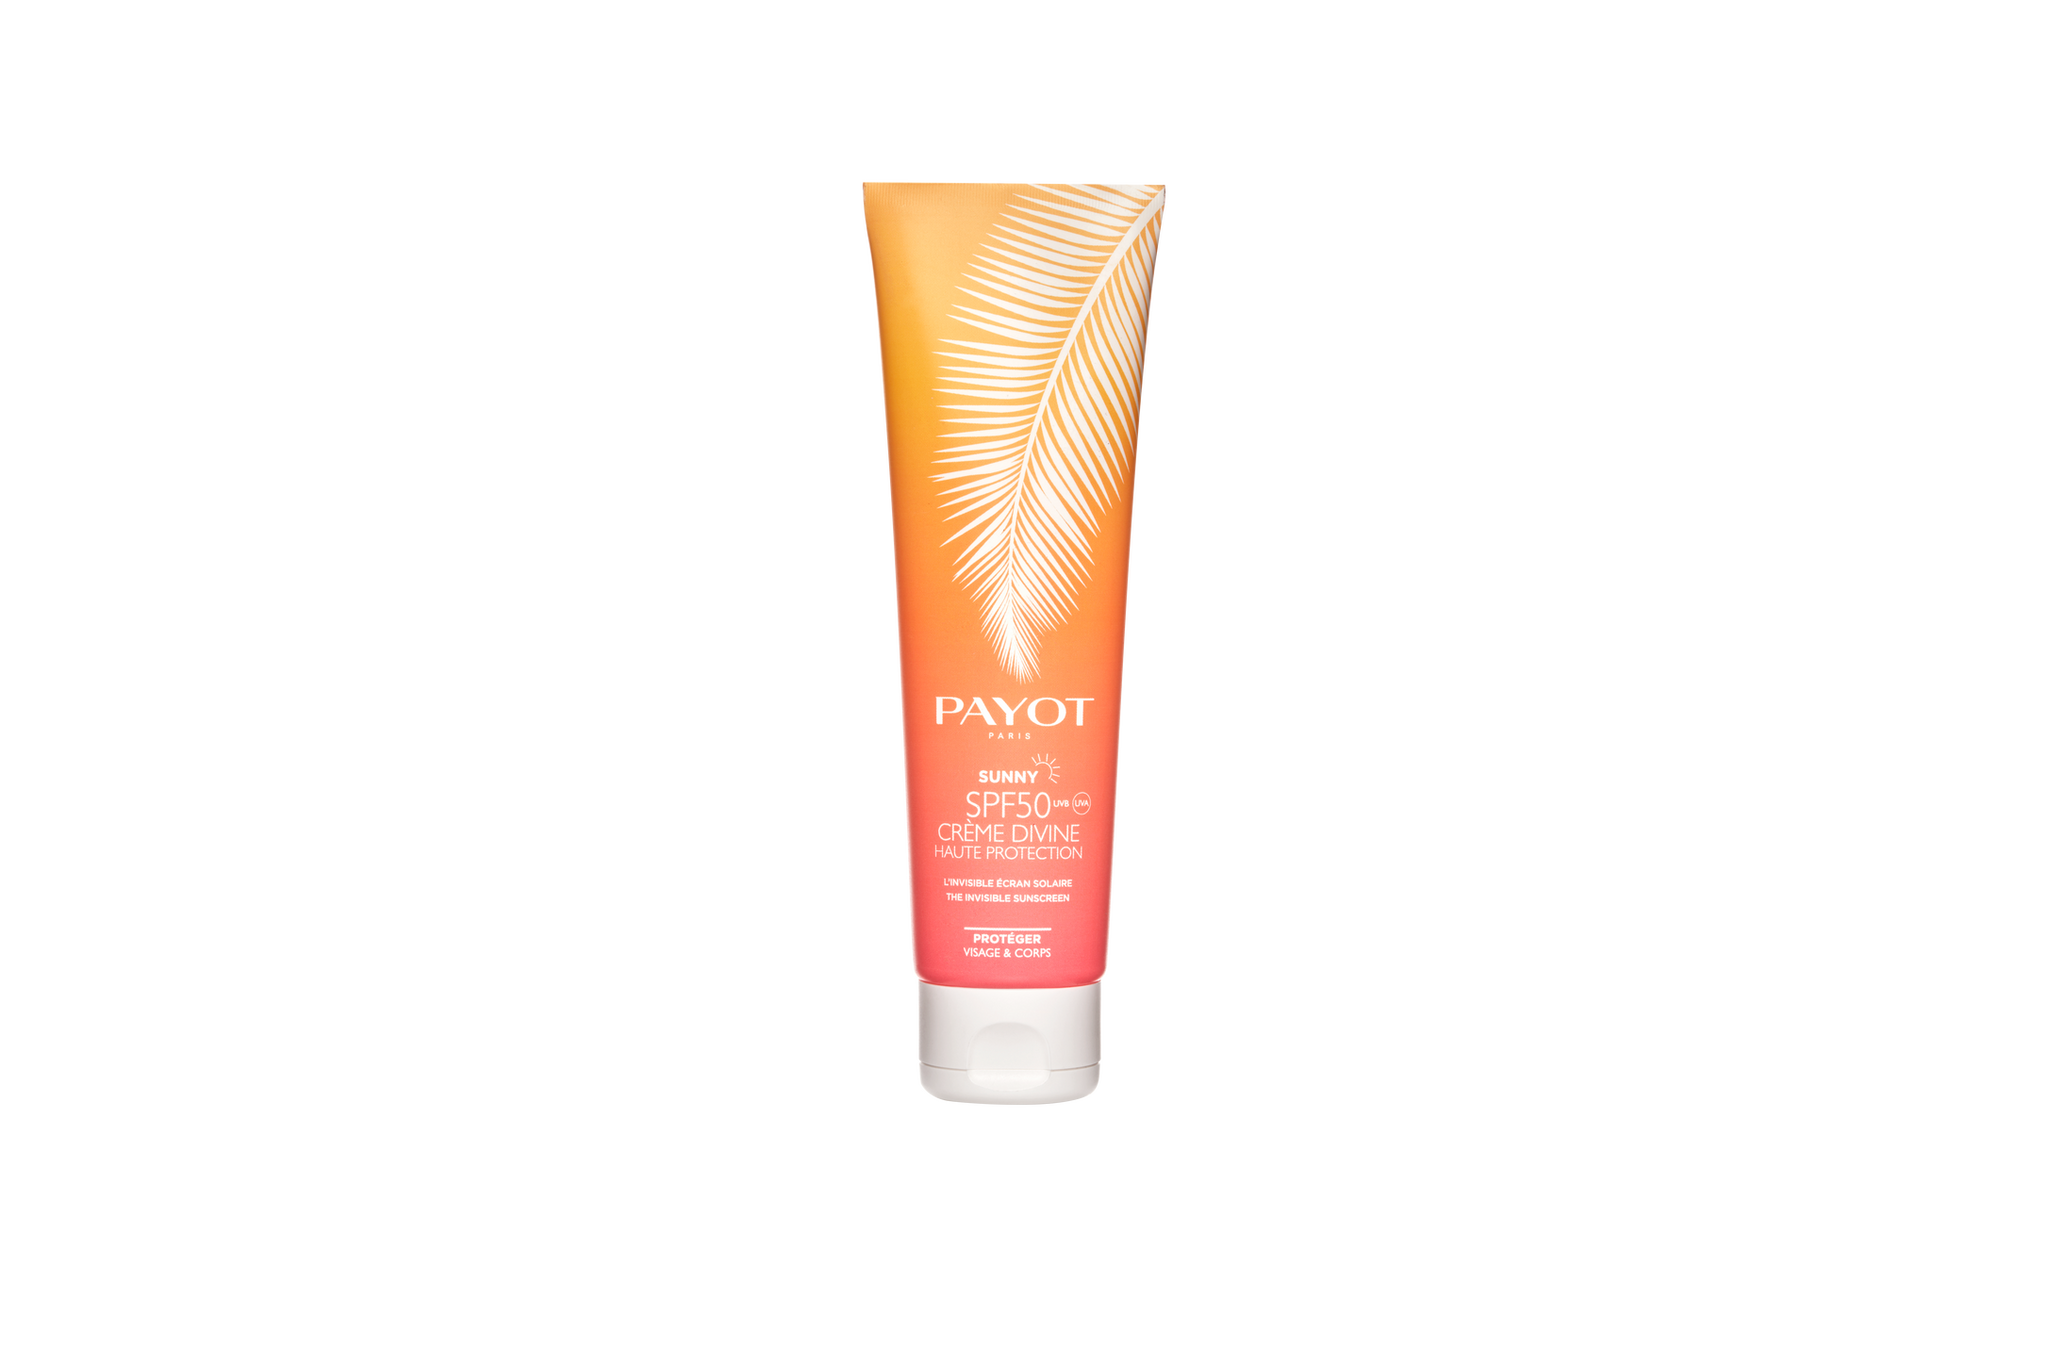 Payot Sunny SPF 50 Crème divine face and body 150ml